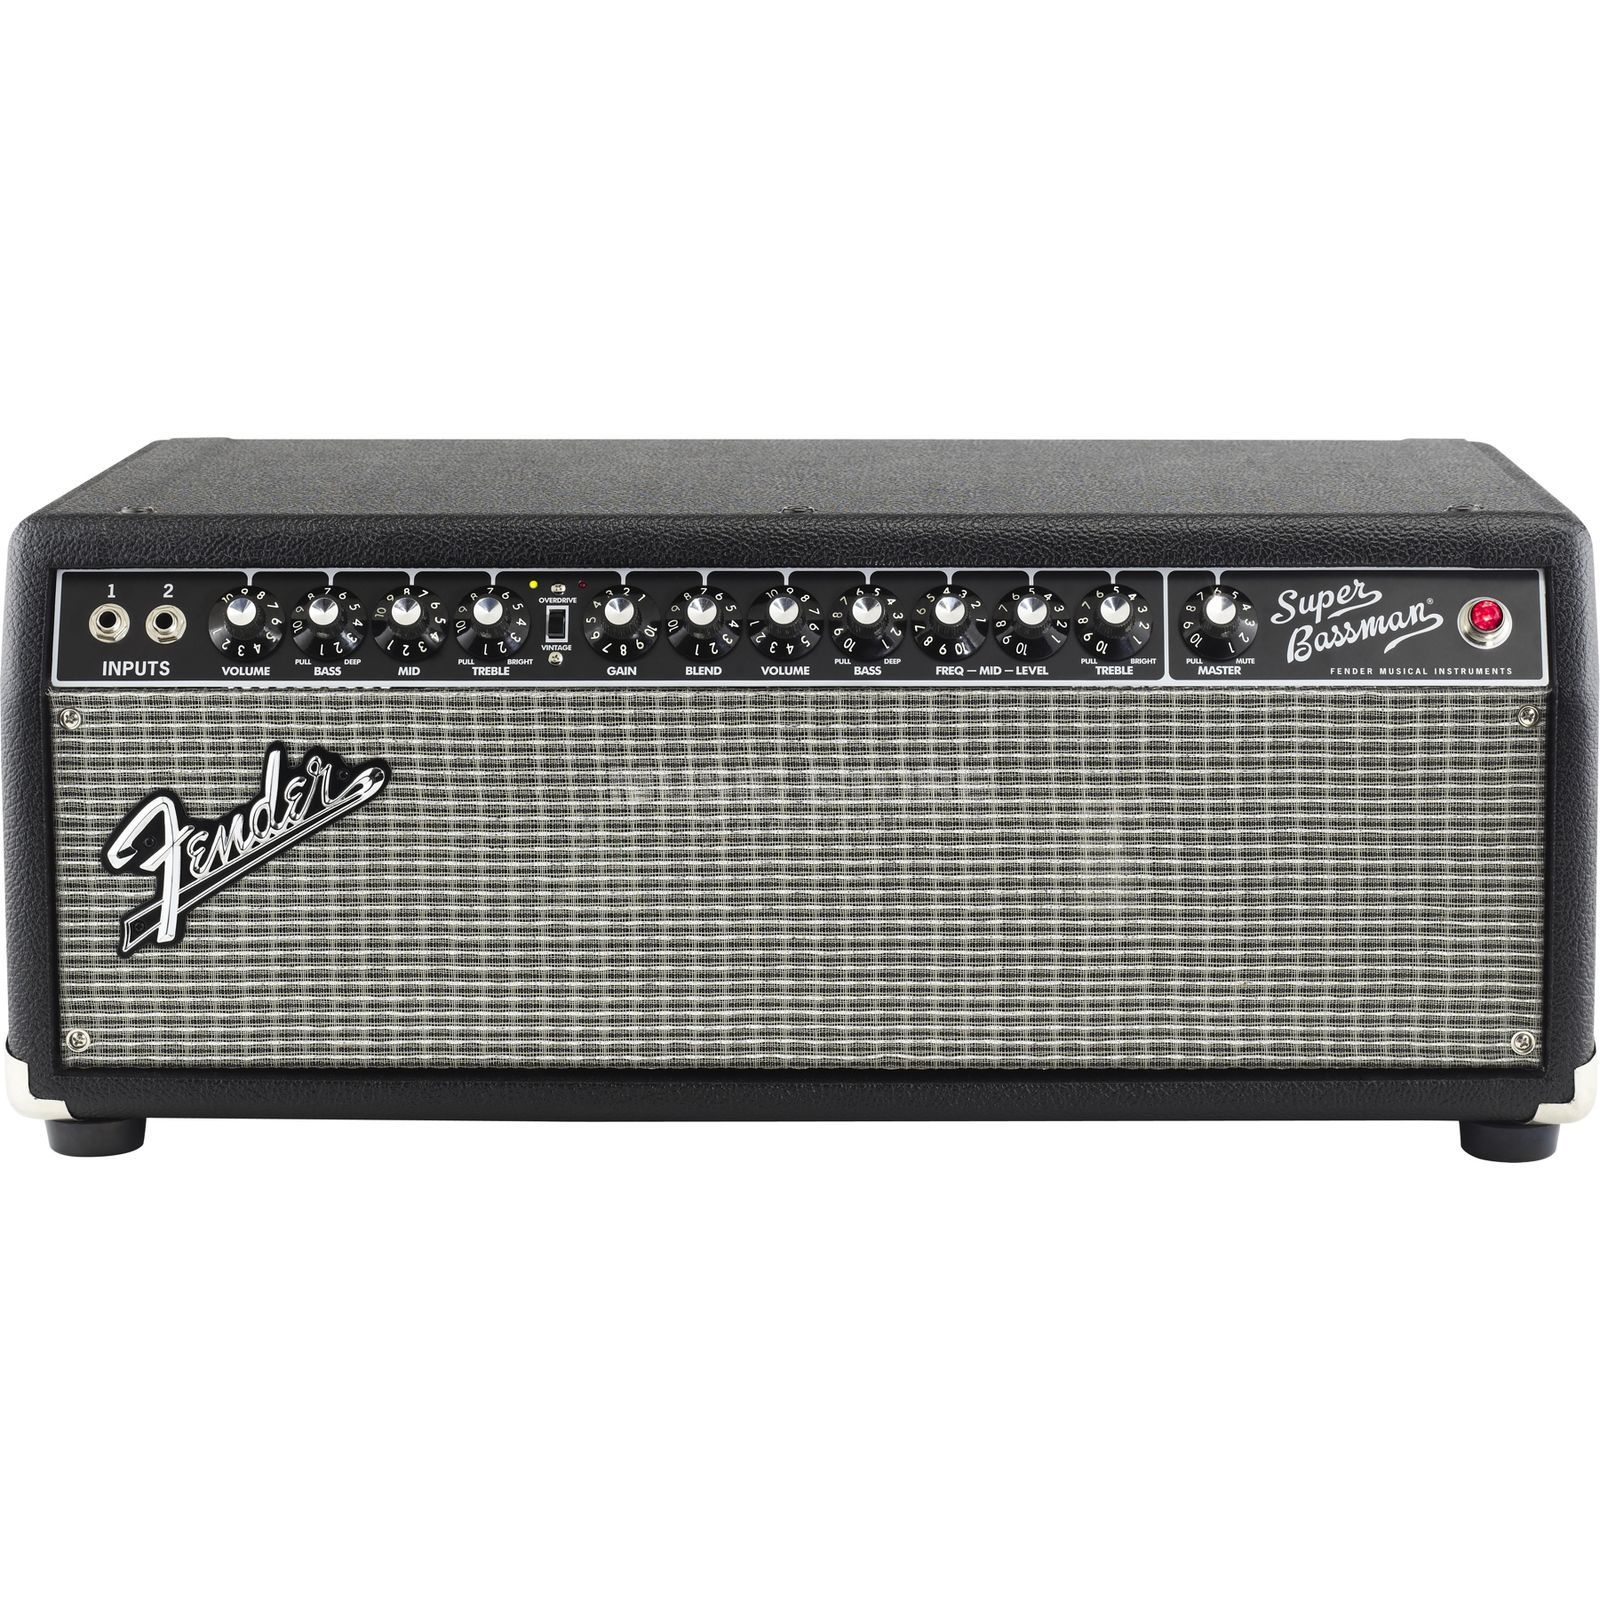 Fender Super-Bassman Bass Guitar Ampl ifier Head   Product Image